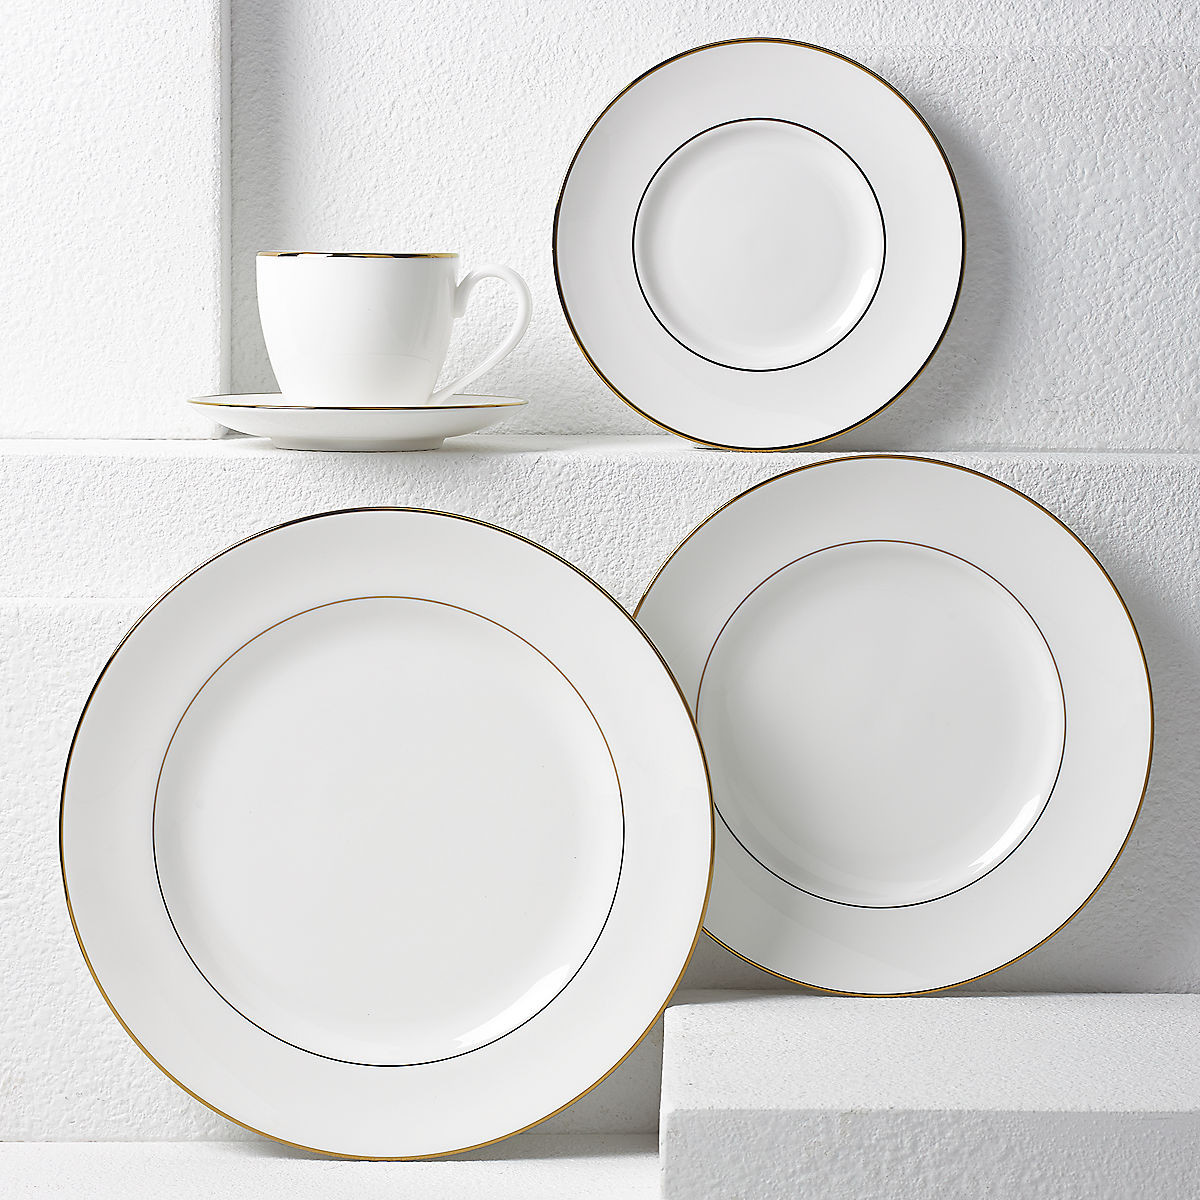 """lenox vase patterns of continental dininga""""¢ gold 5 pc place setting intended for continental dining8482 gold 5 pc place setting 6225304 whr"""